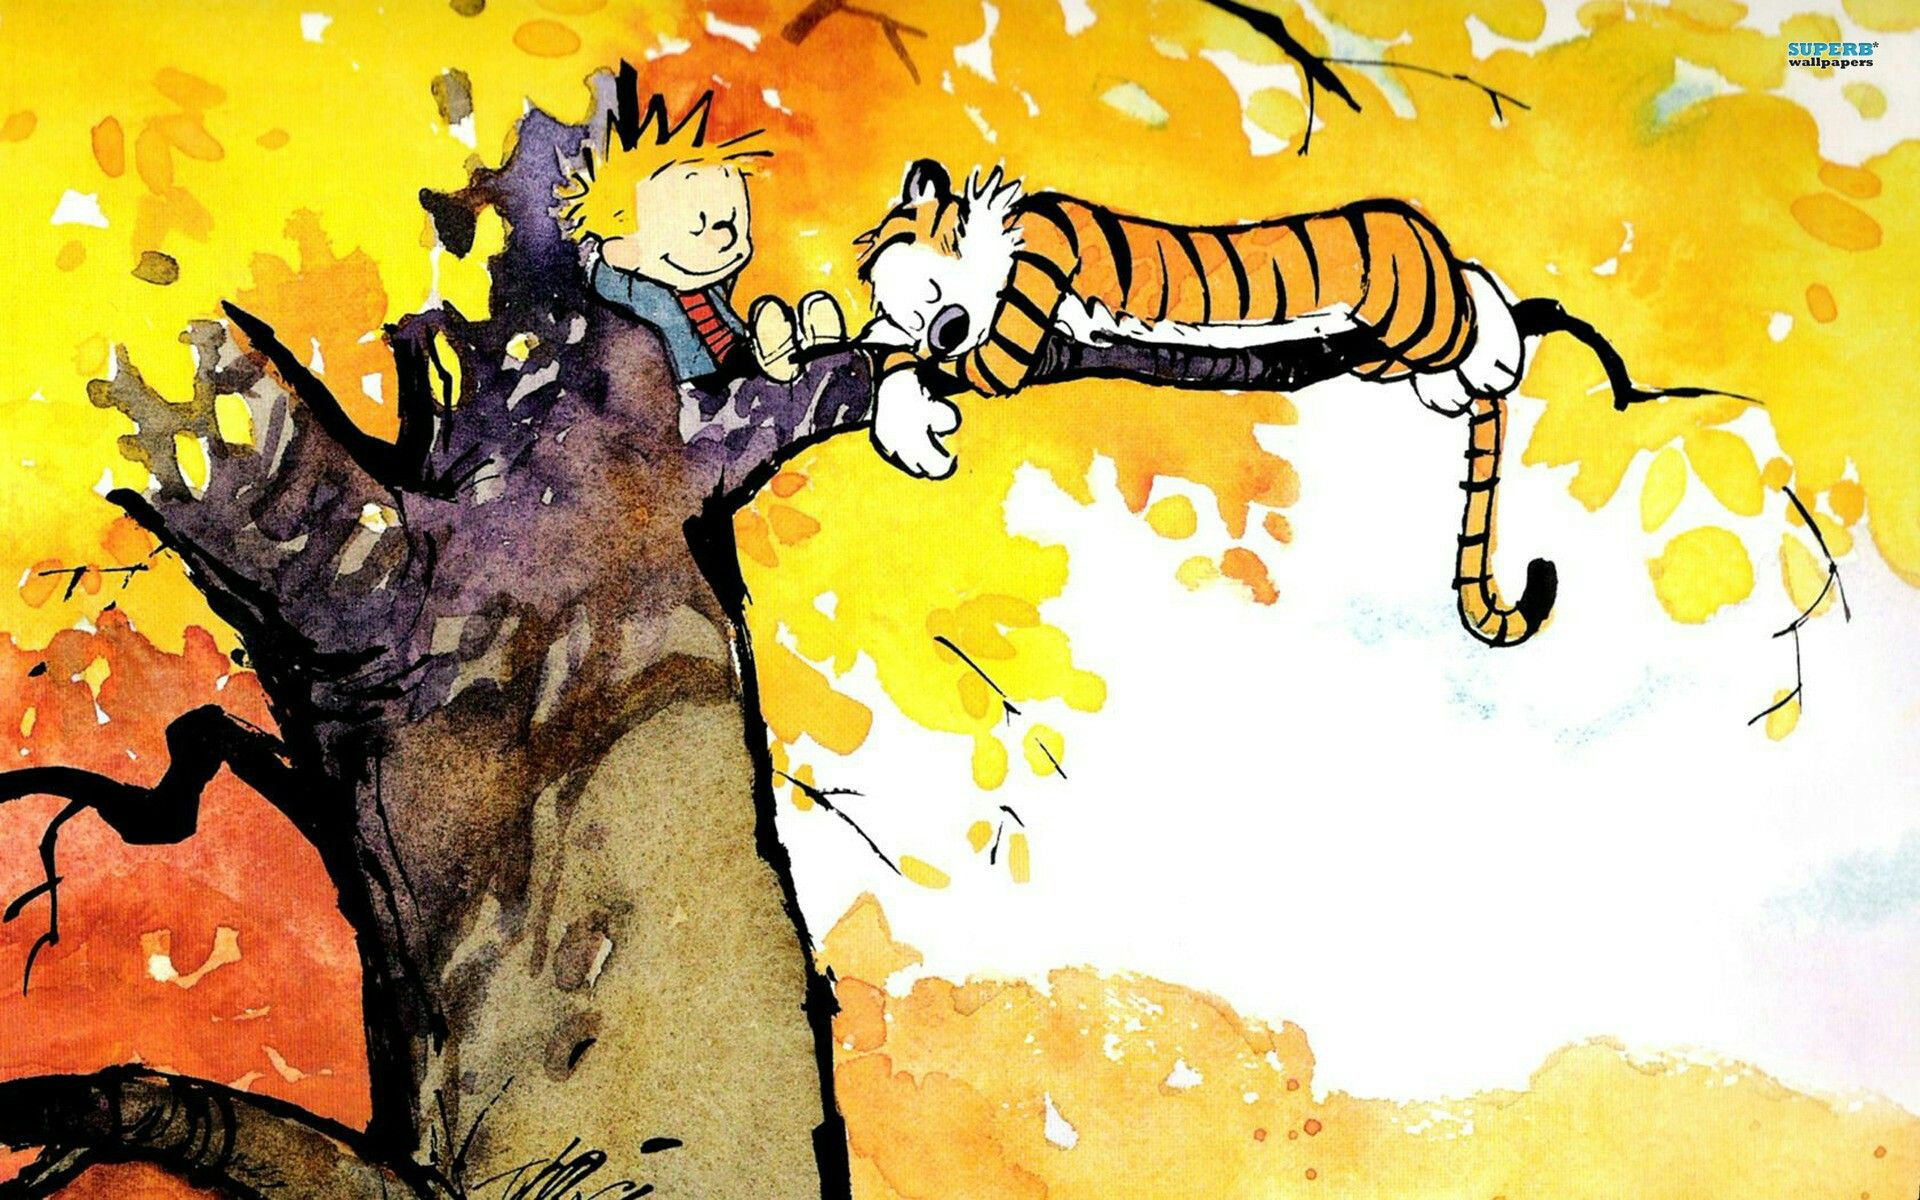 Pin by Halesto Callaway on Calvin And Hobbes | Pinterest